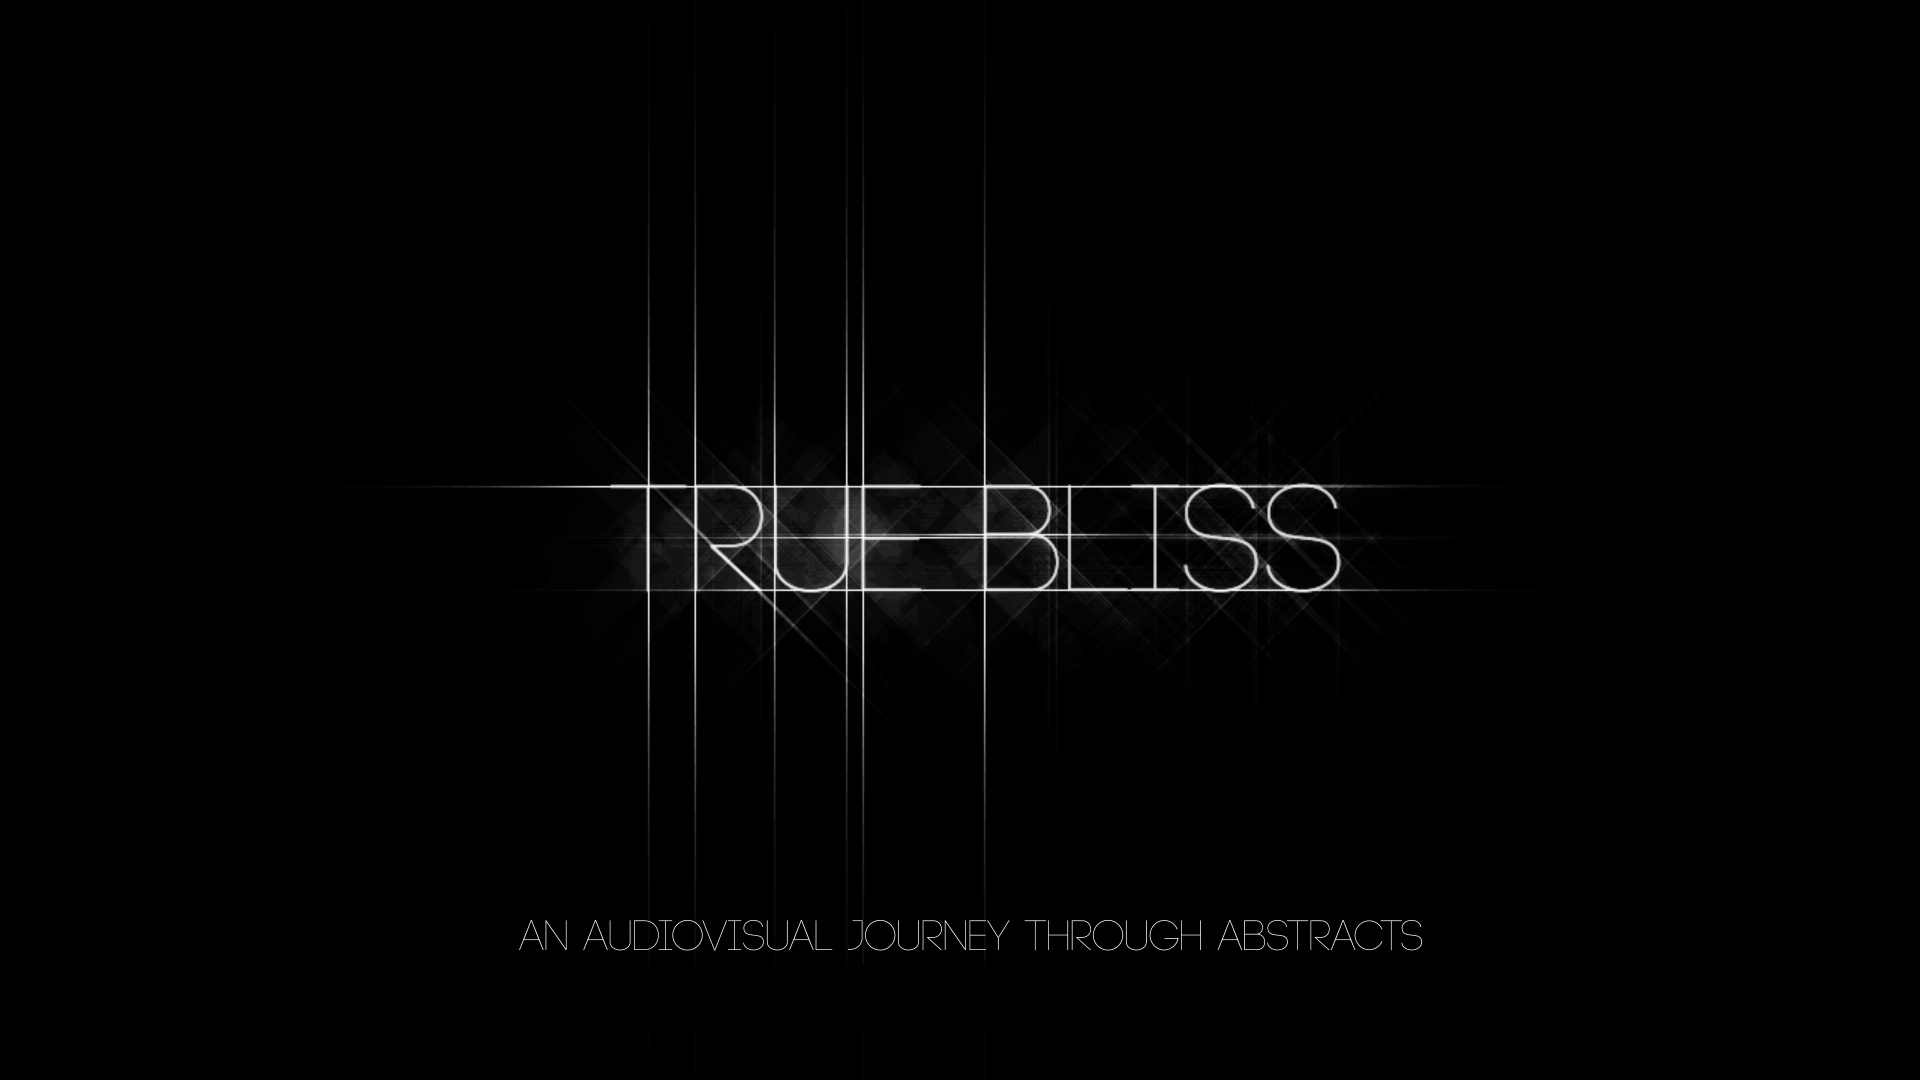 True Bliss | WW (4339bd6f-3e4b-478c-8510-f08c1afd2f88)